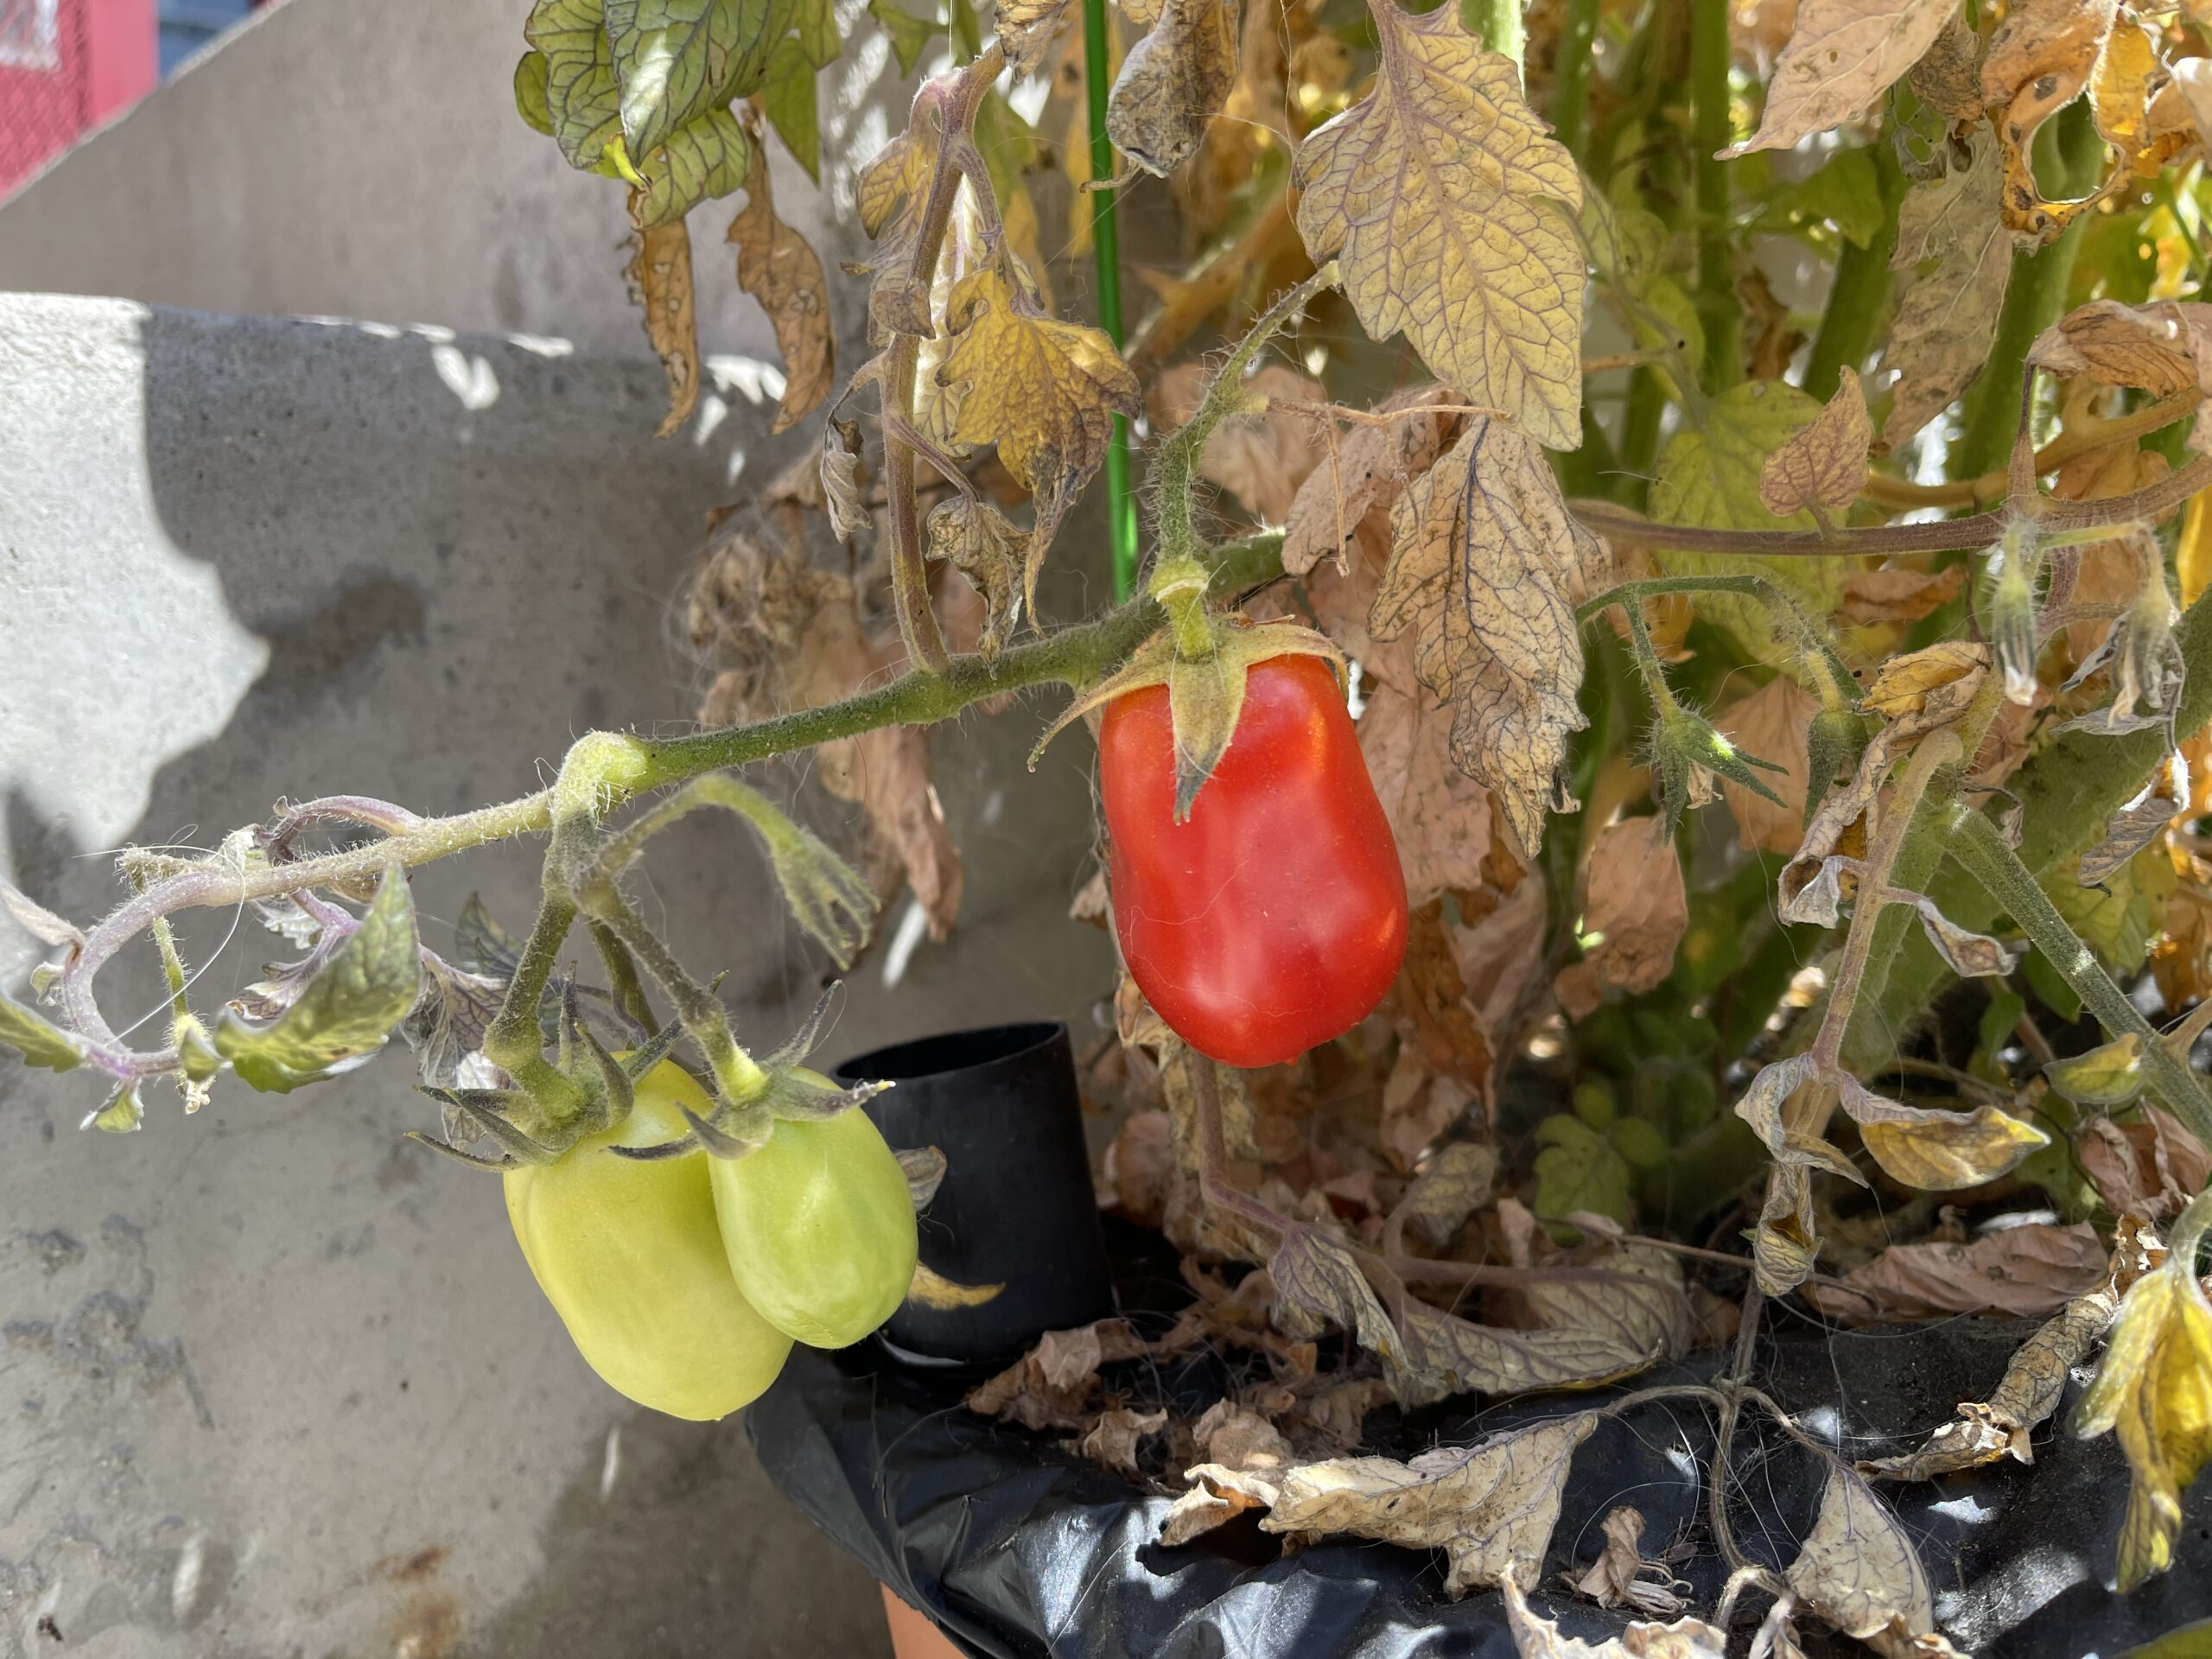 There are more tomatoes in planter boxes and earth, Horatio, than are dreamt of in your philosophy